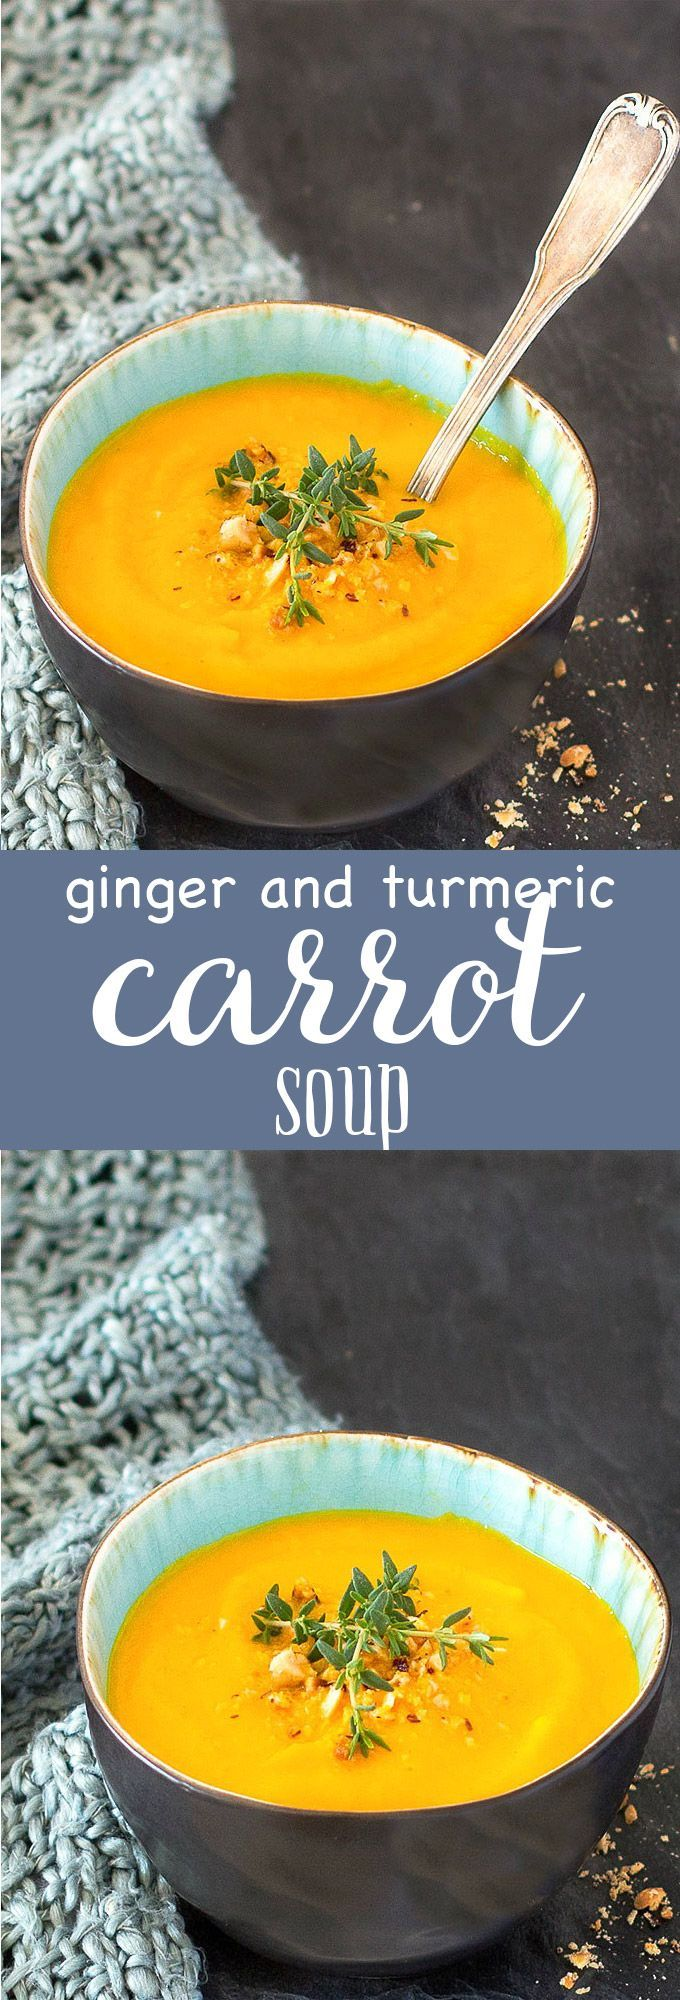 Simple ginger and turmeric carrot soup: creamy, satisfying, nourishing and flavorful. Serve it alongside a salad for a light lunch or as a starter for dinner or brunch